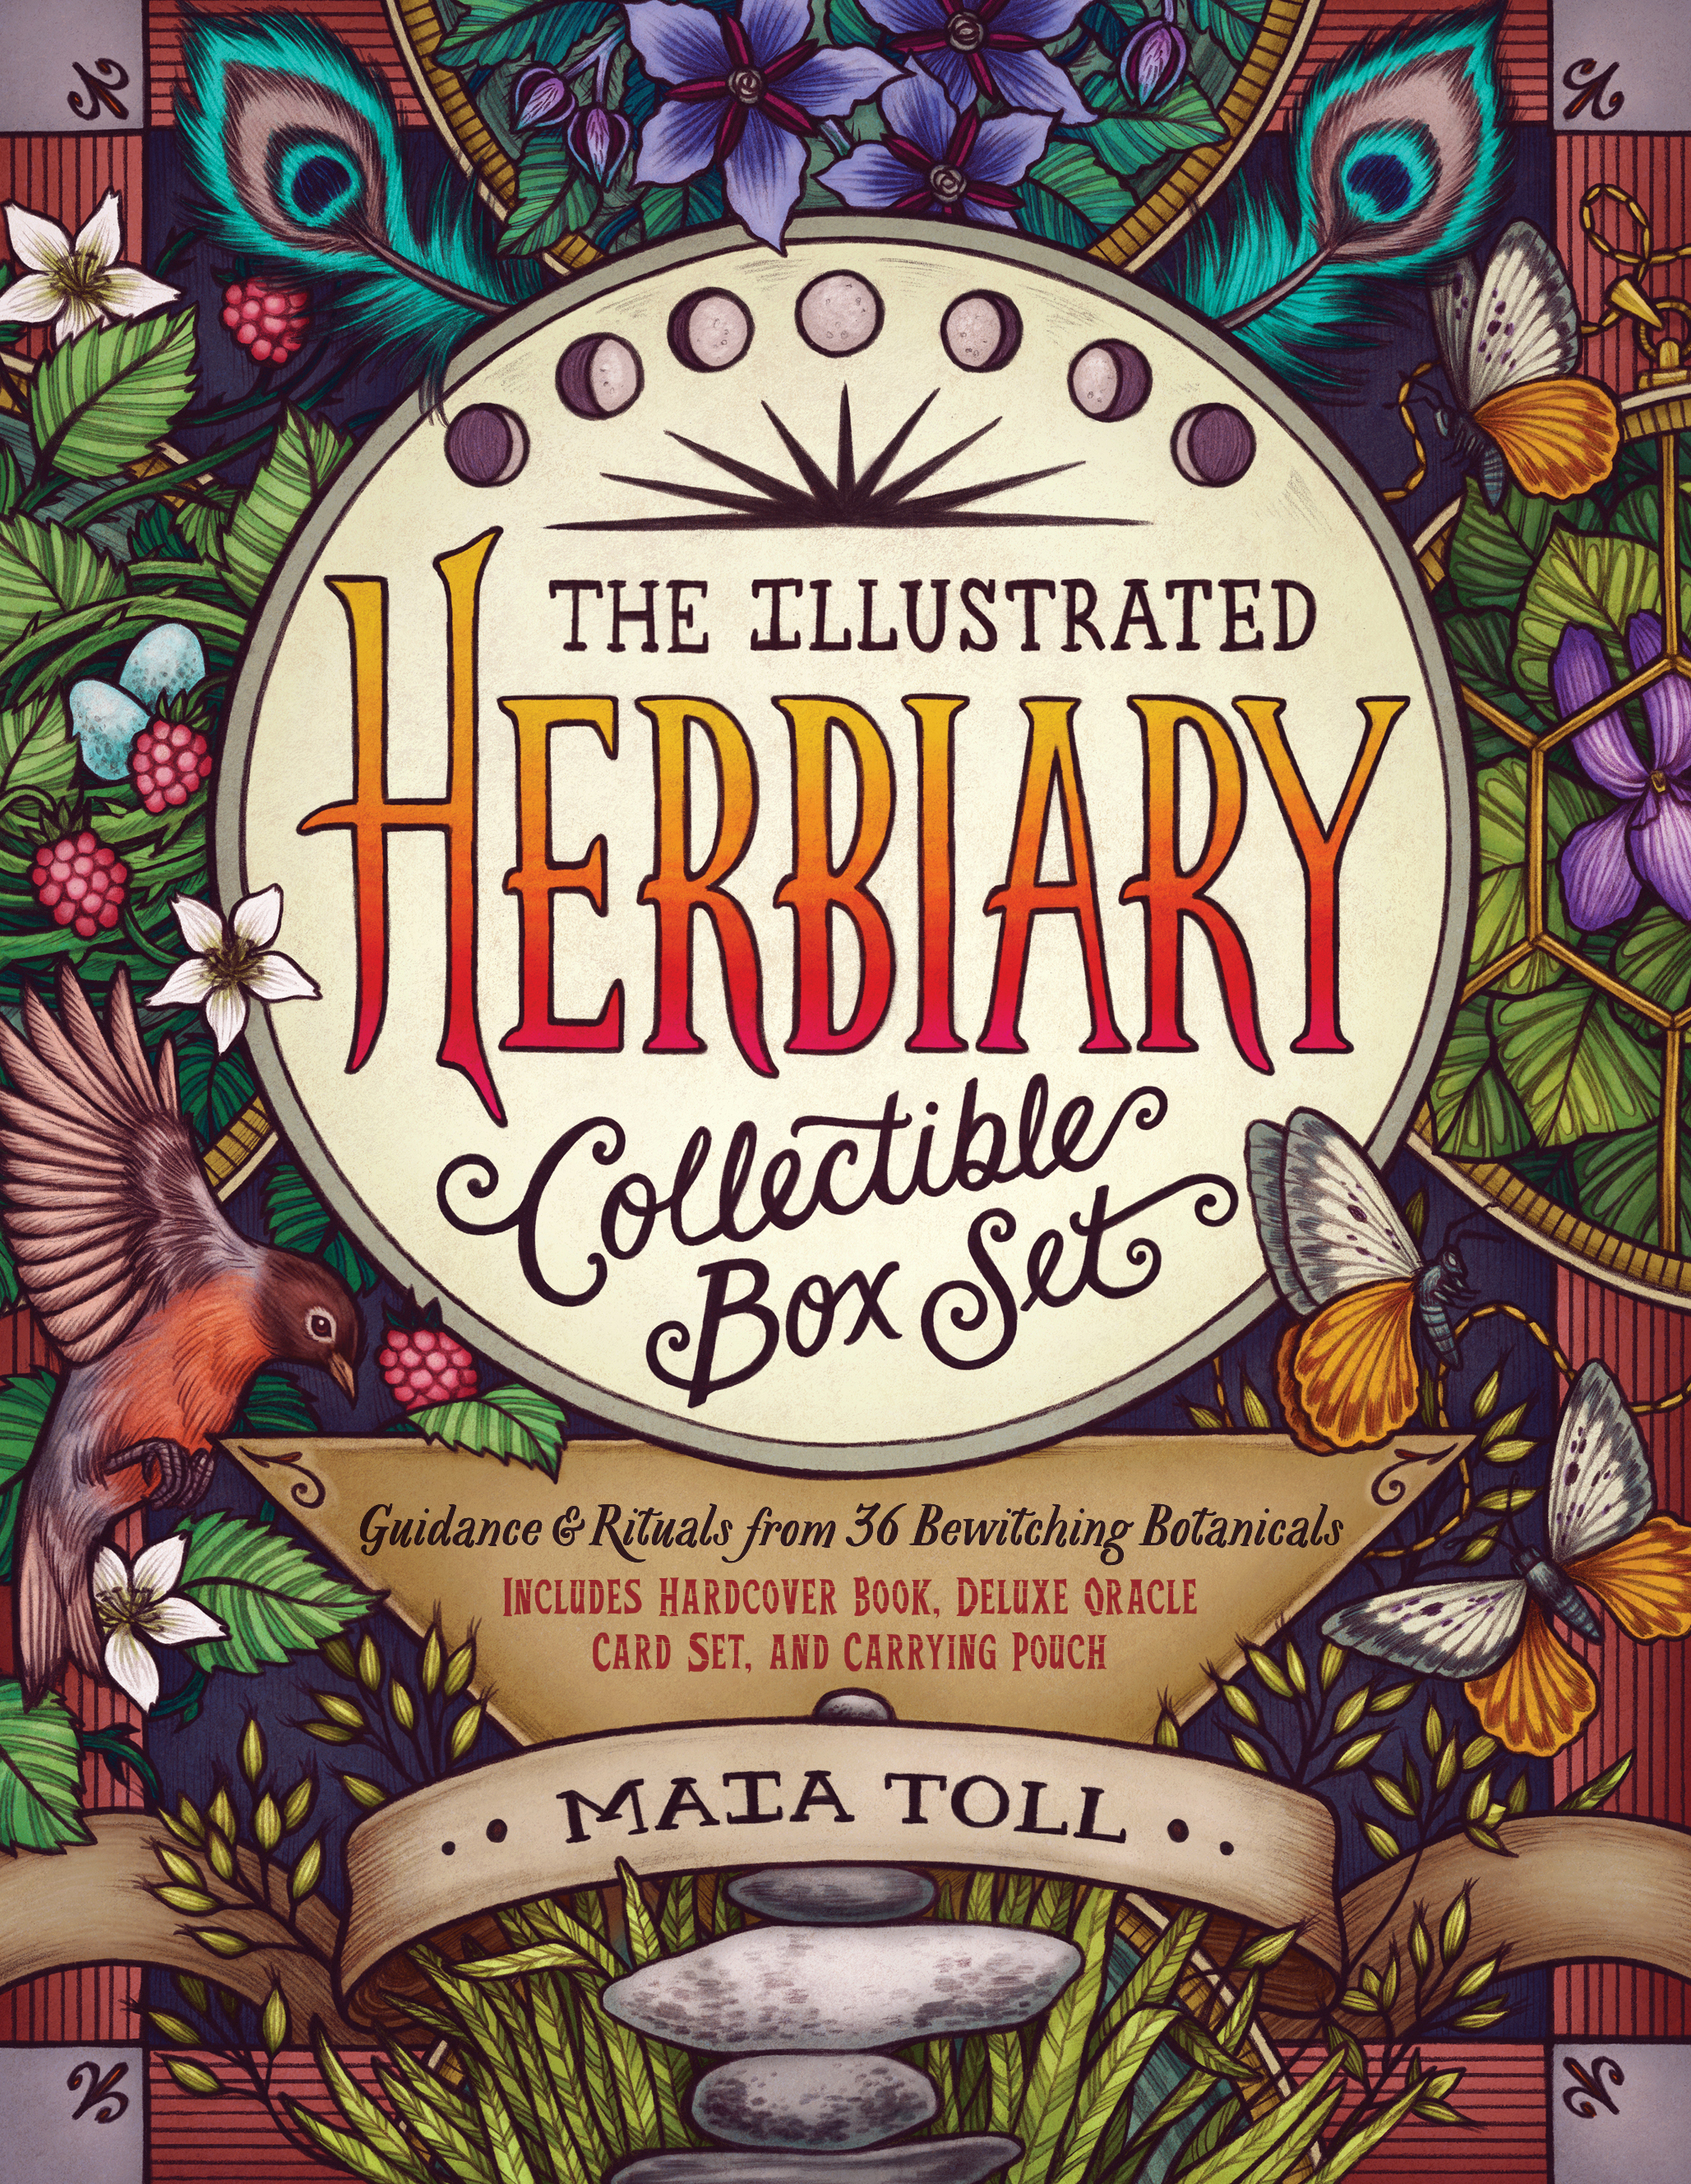 The Illustrated Herbiary Collectible Box Set Guidance and Rituals from 36 Bewitching Botanicals; Includes Hardcover Book, Deluxe Oracle Card Set, and Carrying Pouch - Maia Toll